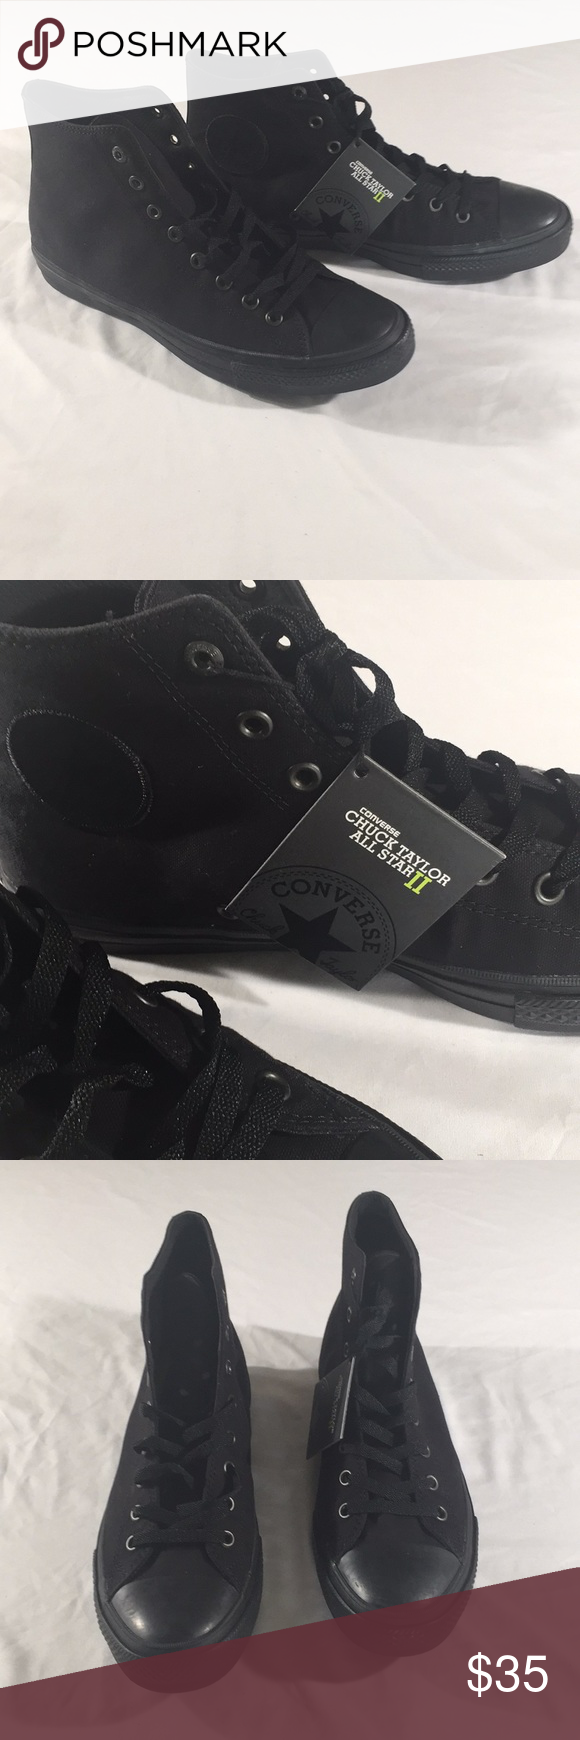 3cdda065b1ec Converse 151221C CTAS II HI Converse 151221C CTAS II HI Color black New  with tags (no box) Men size 10 women size 12 Men size 11 women size 13  Converse ...